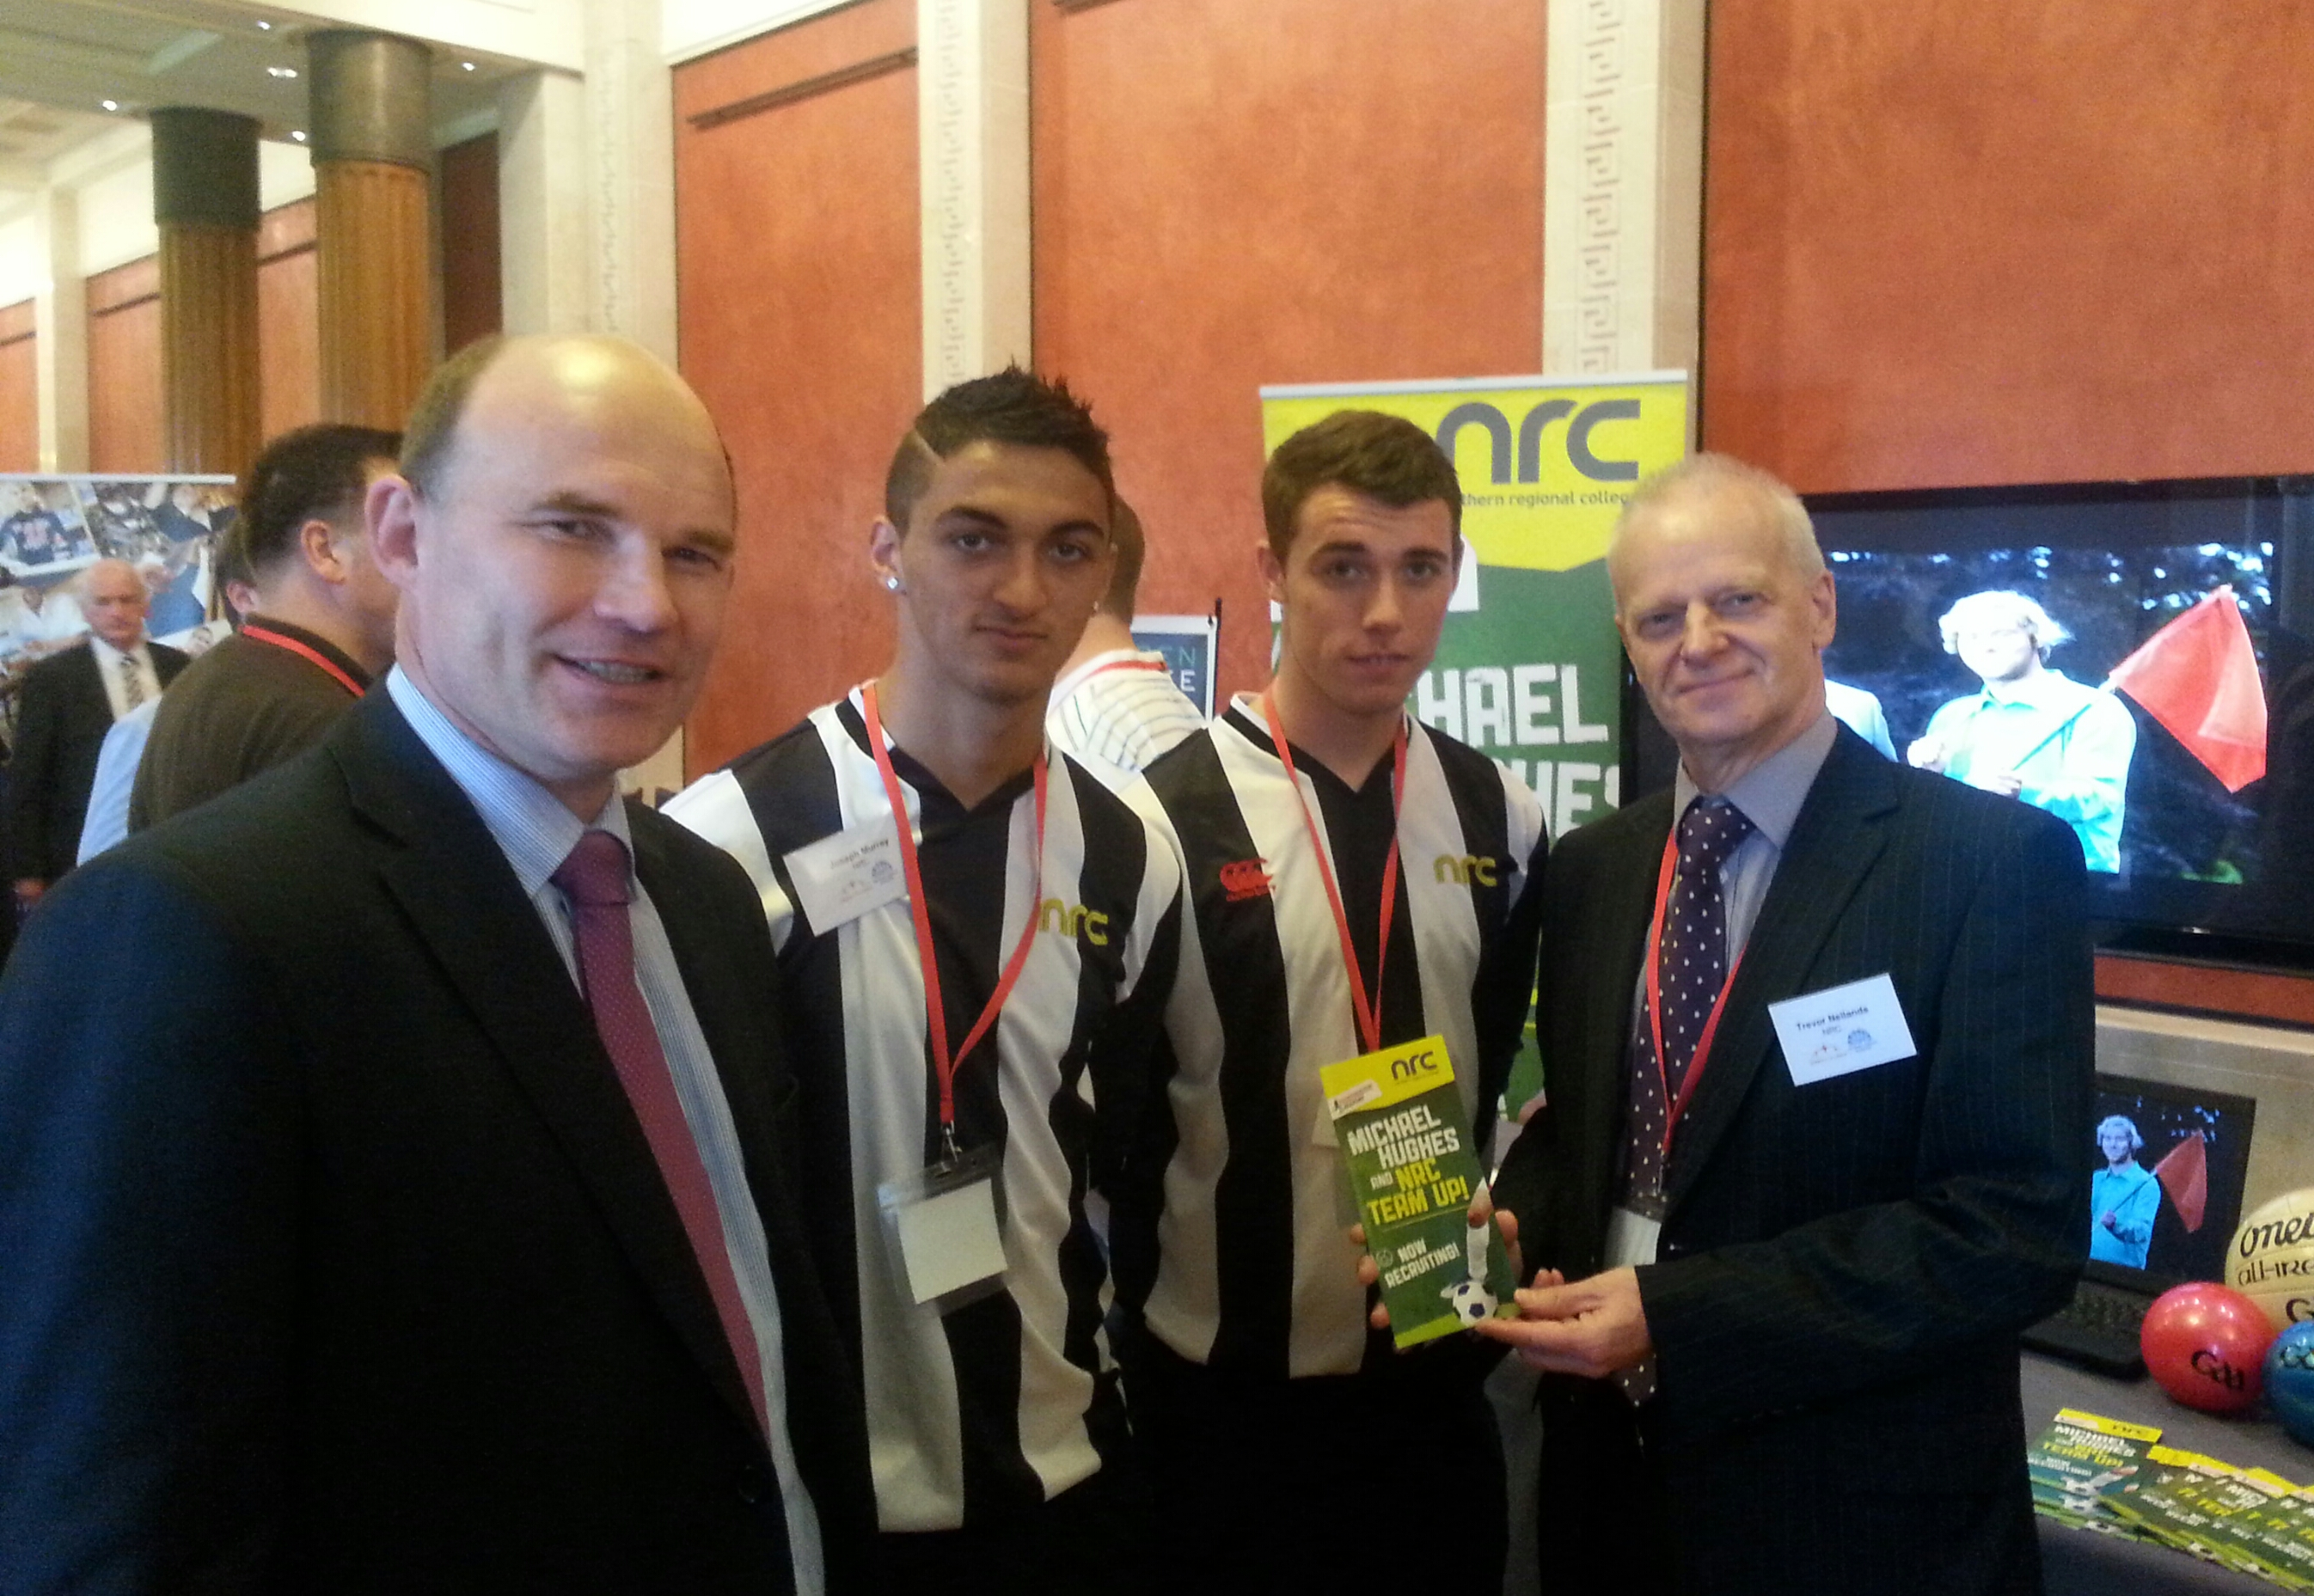 Stormont Showcase for NI Colleges